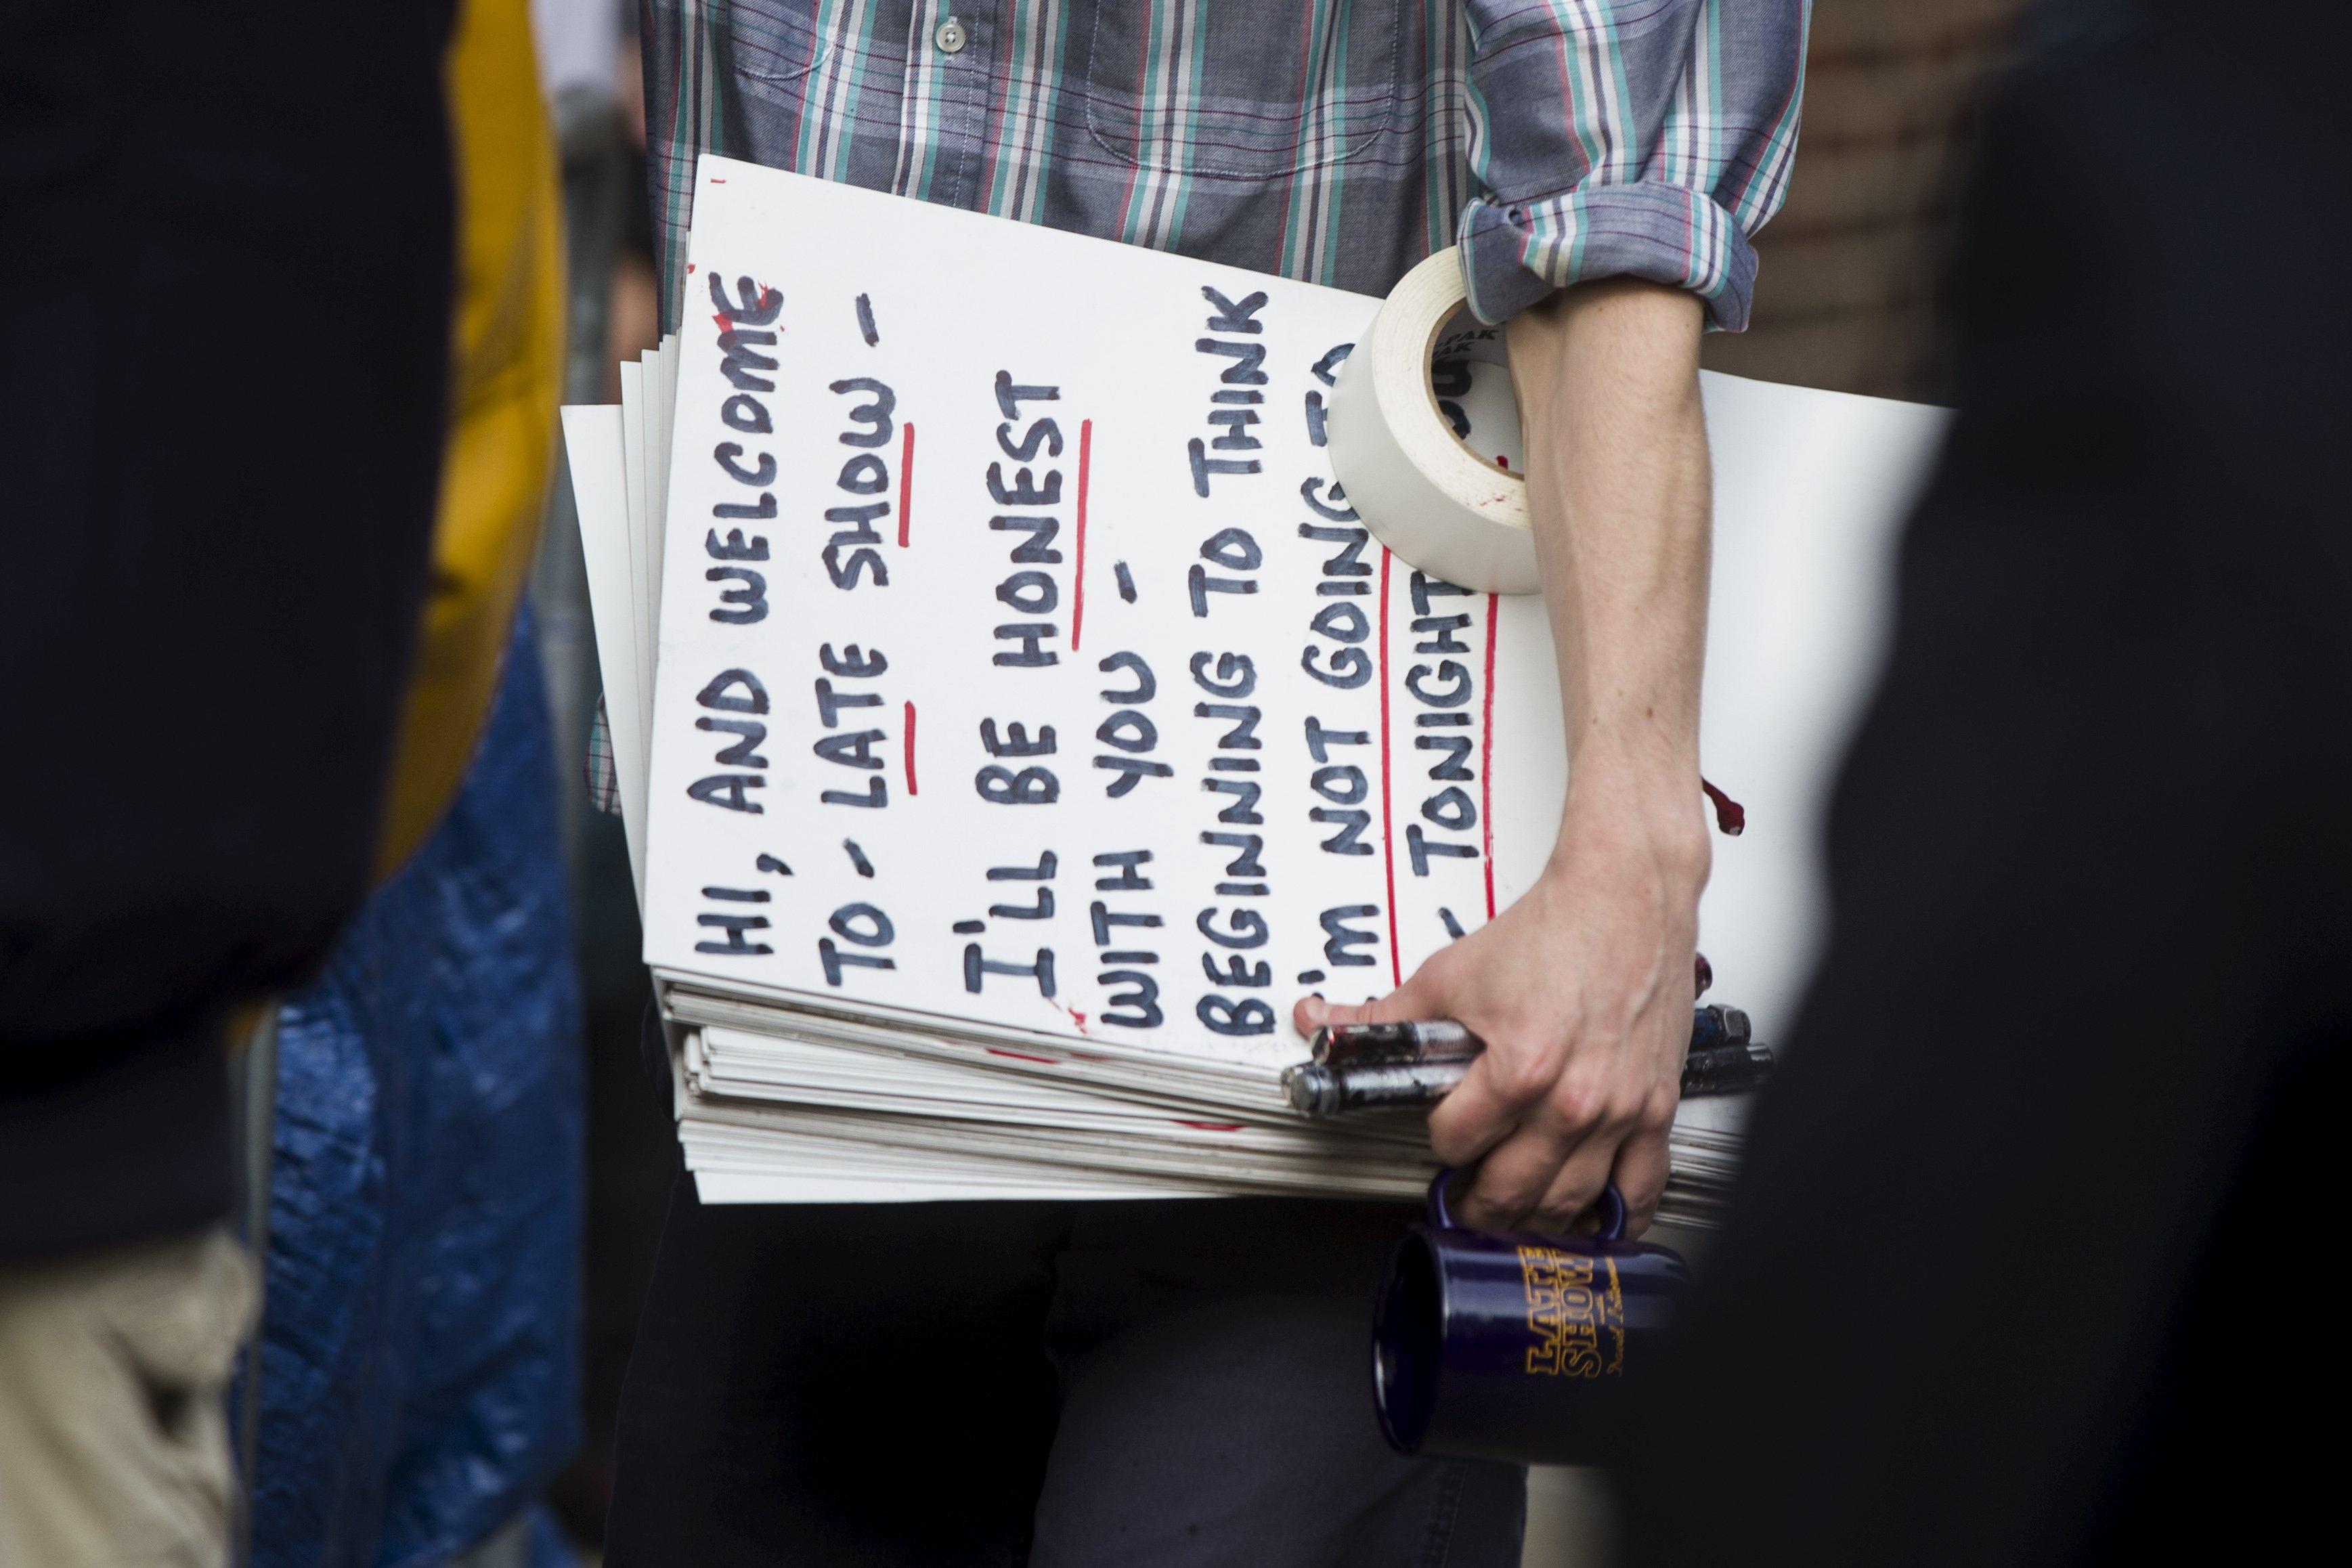 """A man carries a cue card for David letterman outside the Ed Sullivan Theater in Manhattan after the taping of tonight's final edition of """"The Late Show"""" with David Letterman in New York May 20, 2015. REUTERS/Lucas Jackson"""